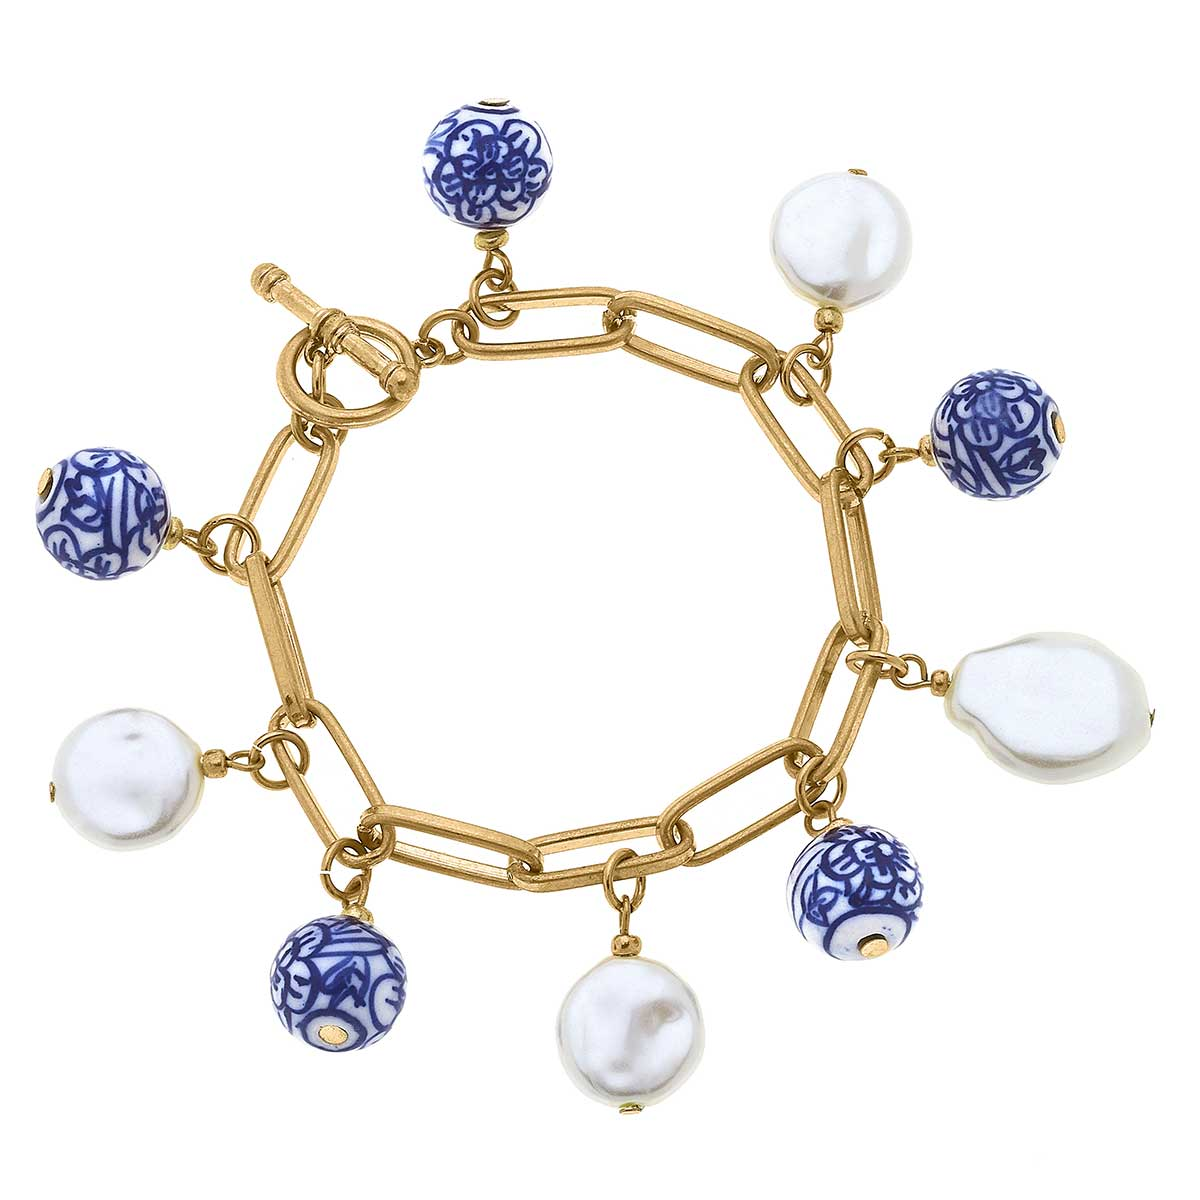 Paloma Chinoiserie Charm Bracelet in Blue & White